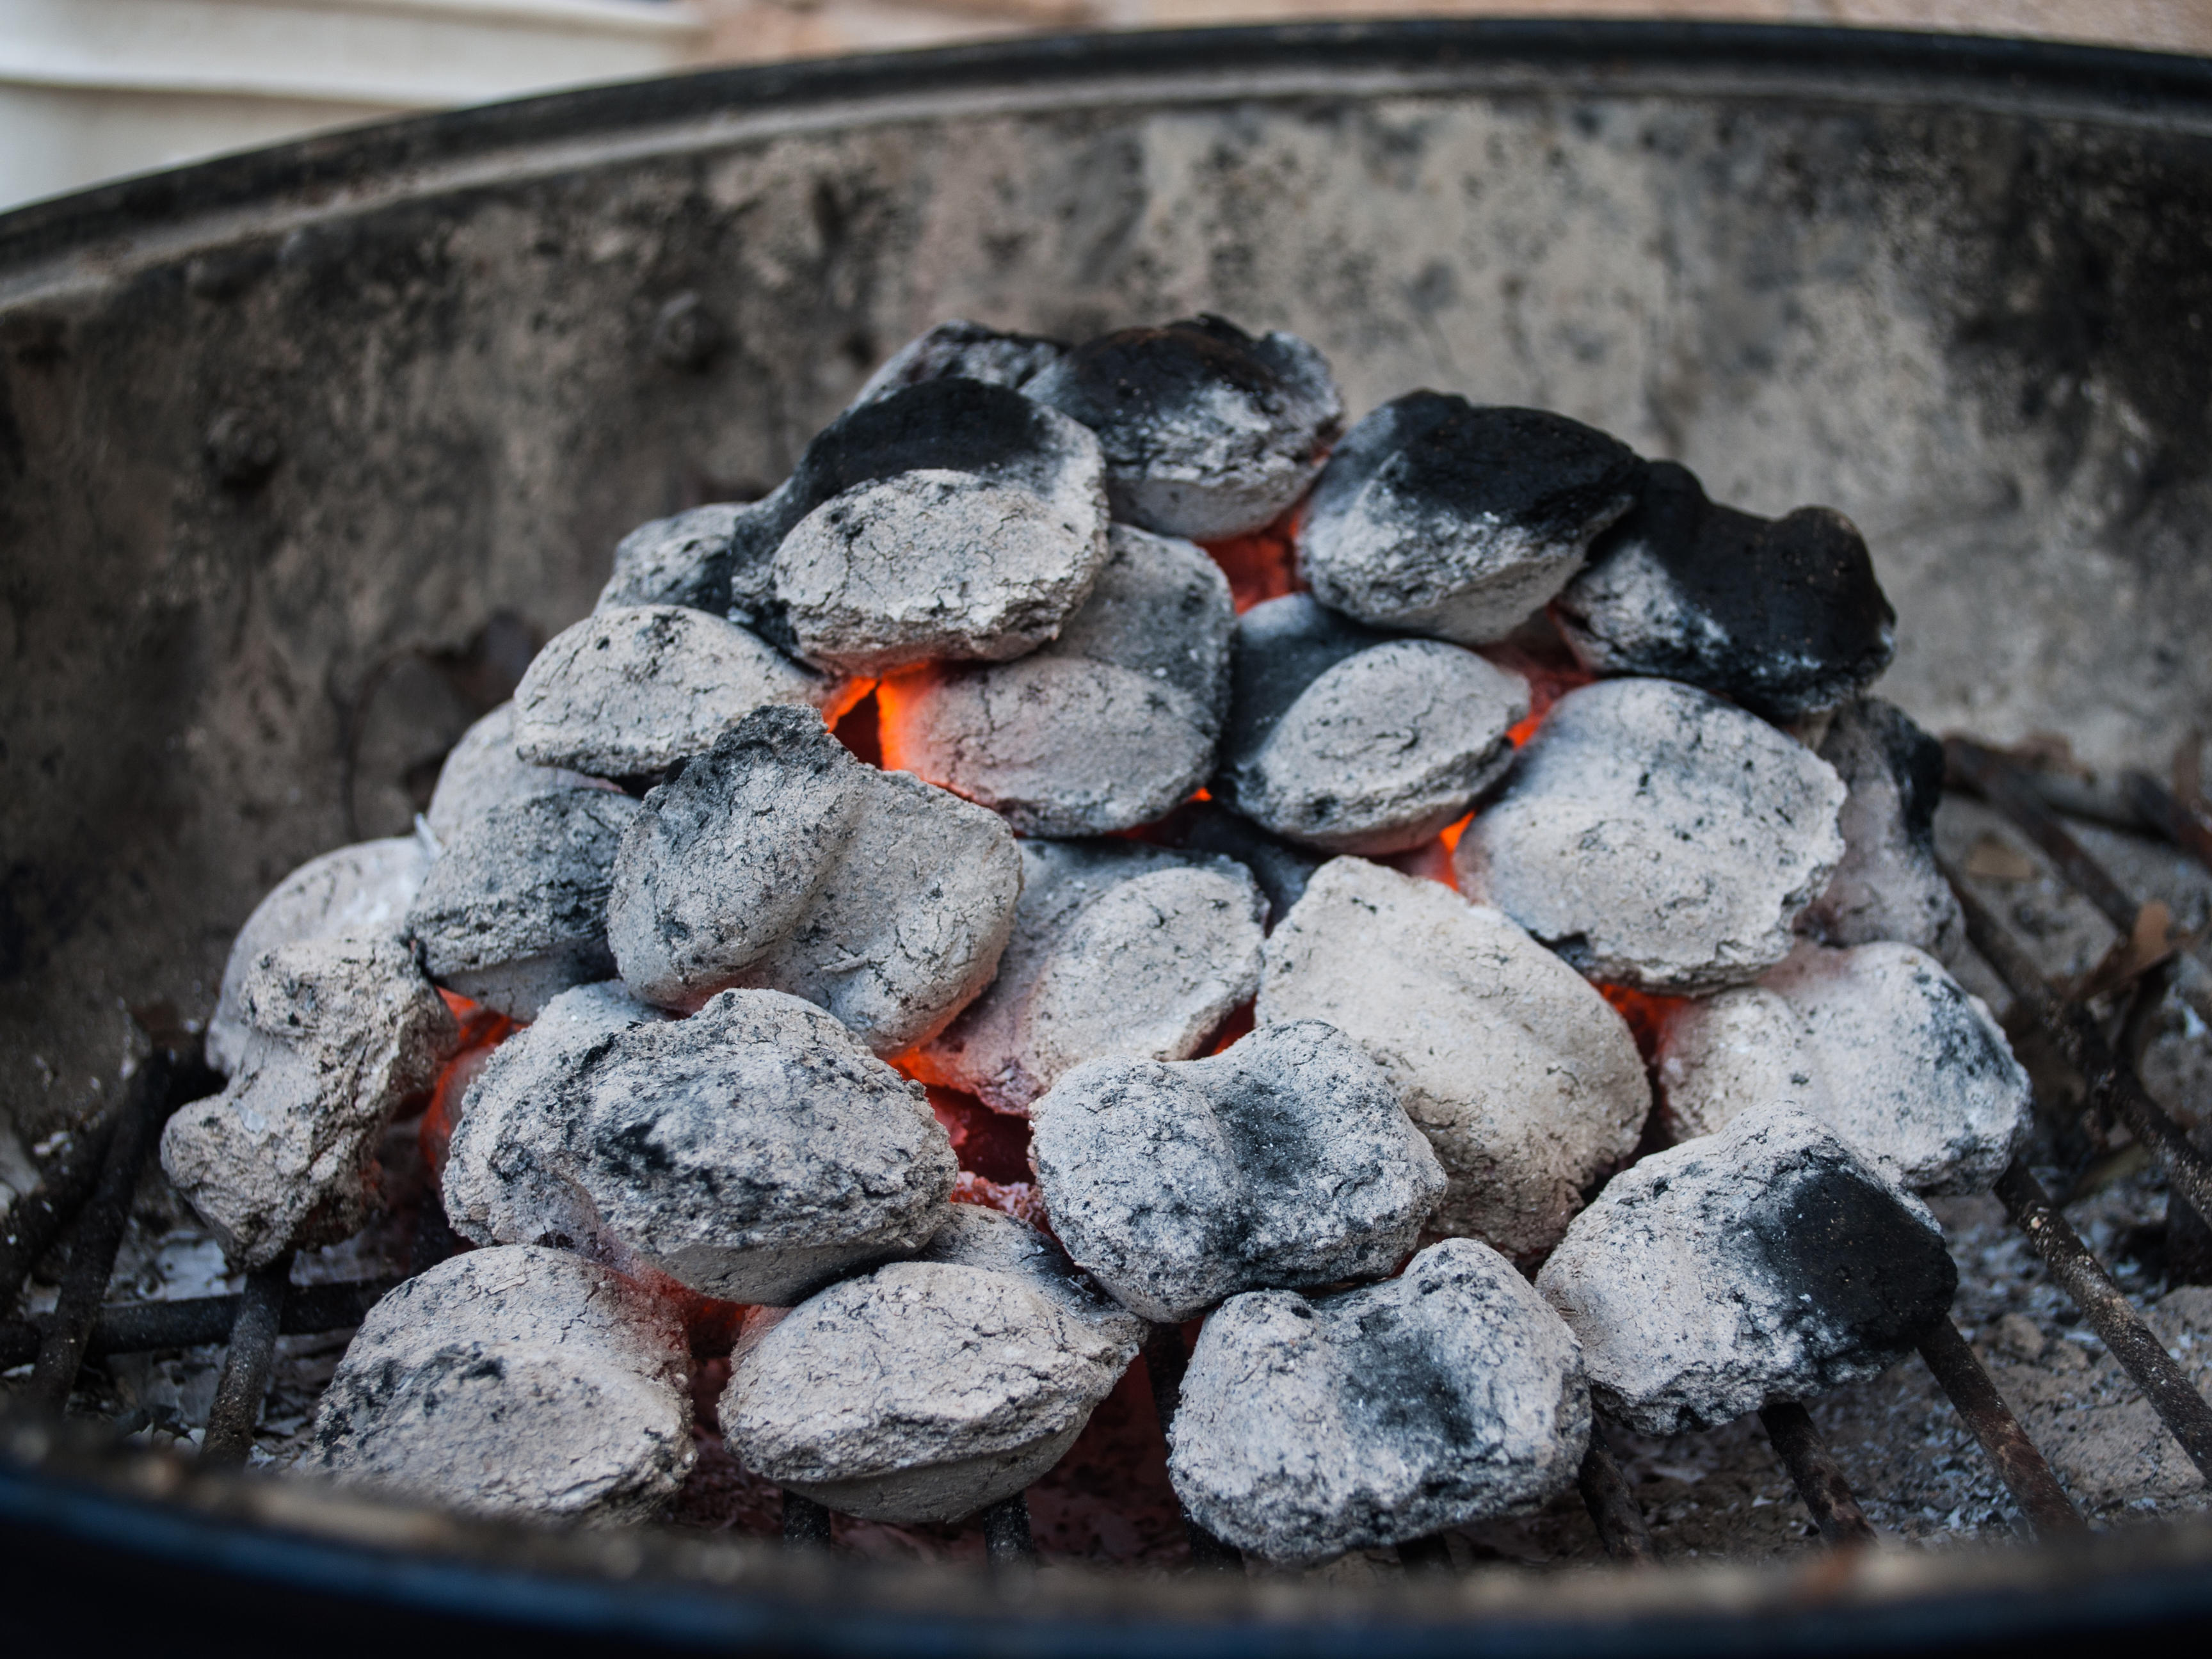 Close-Up Of Coal In Barbecue Grill